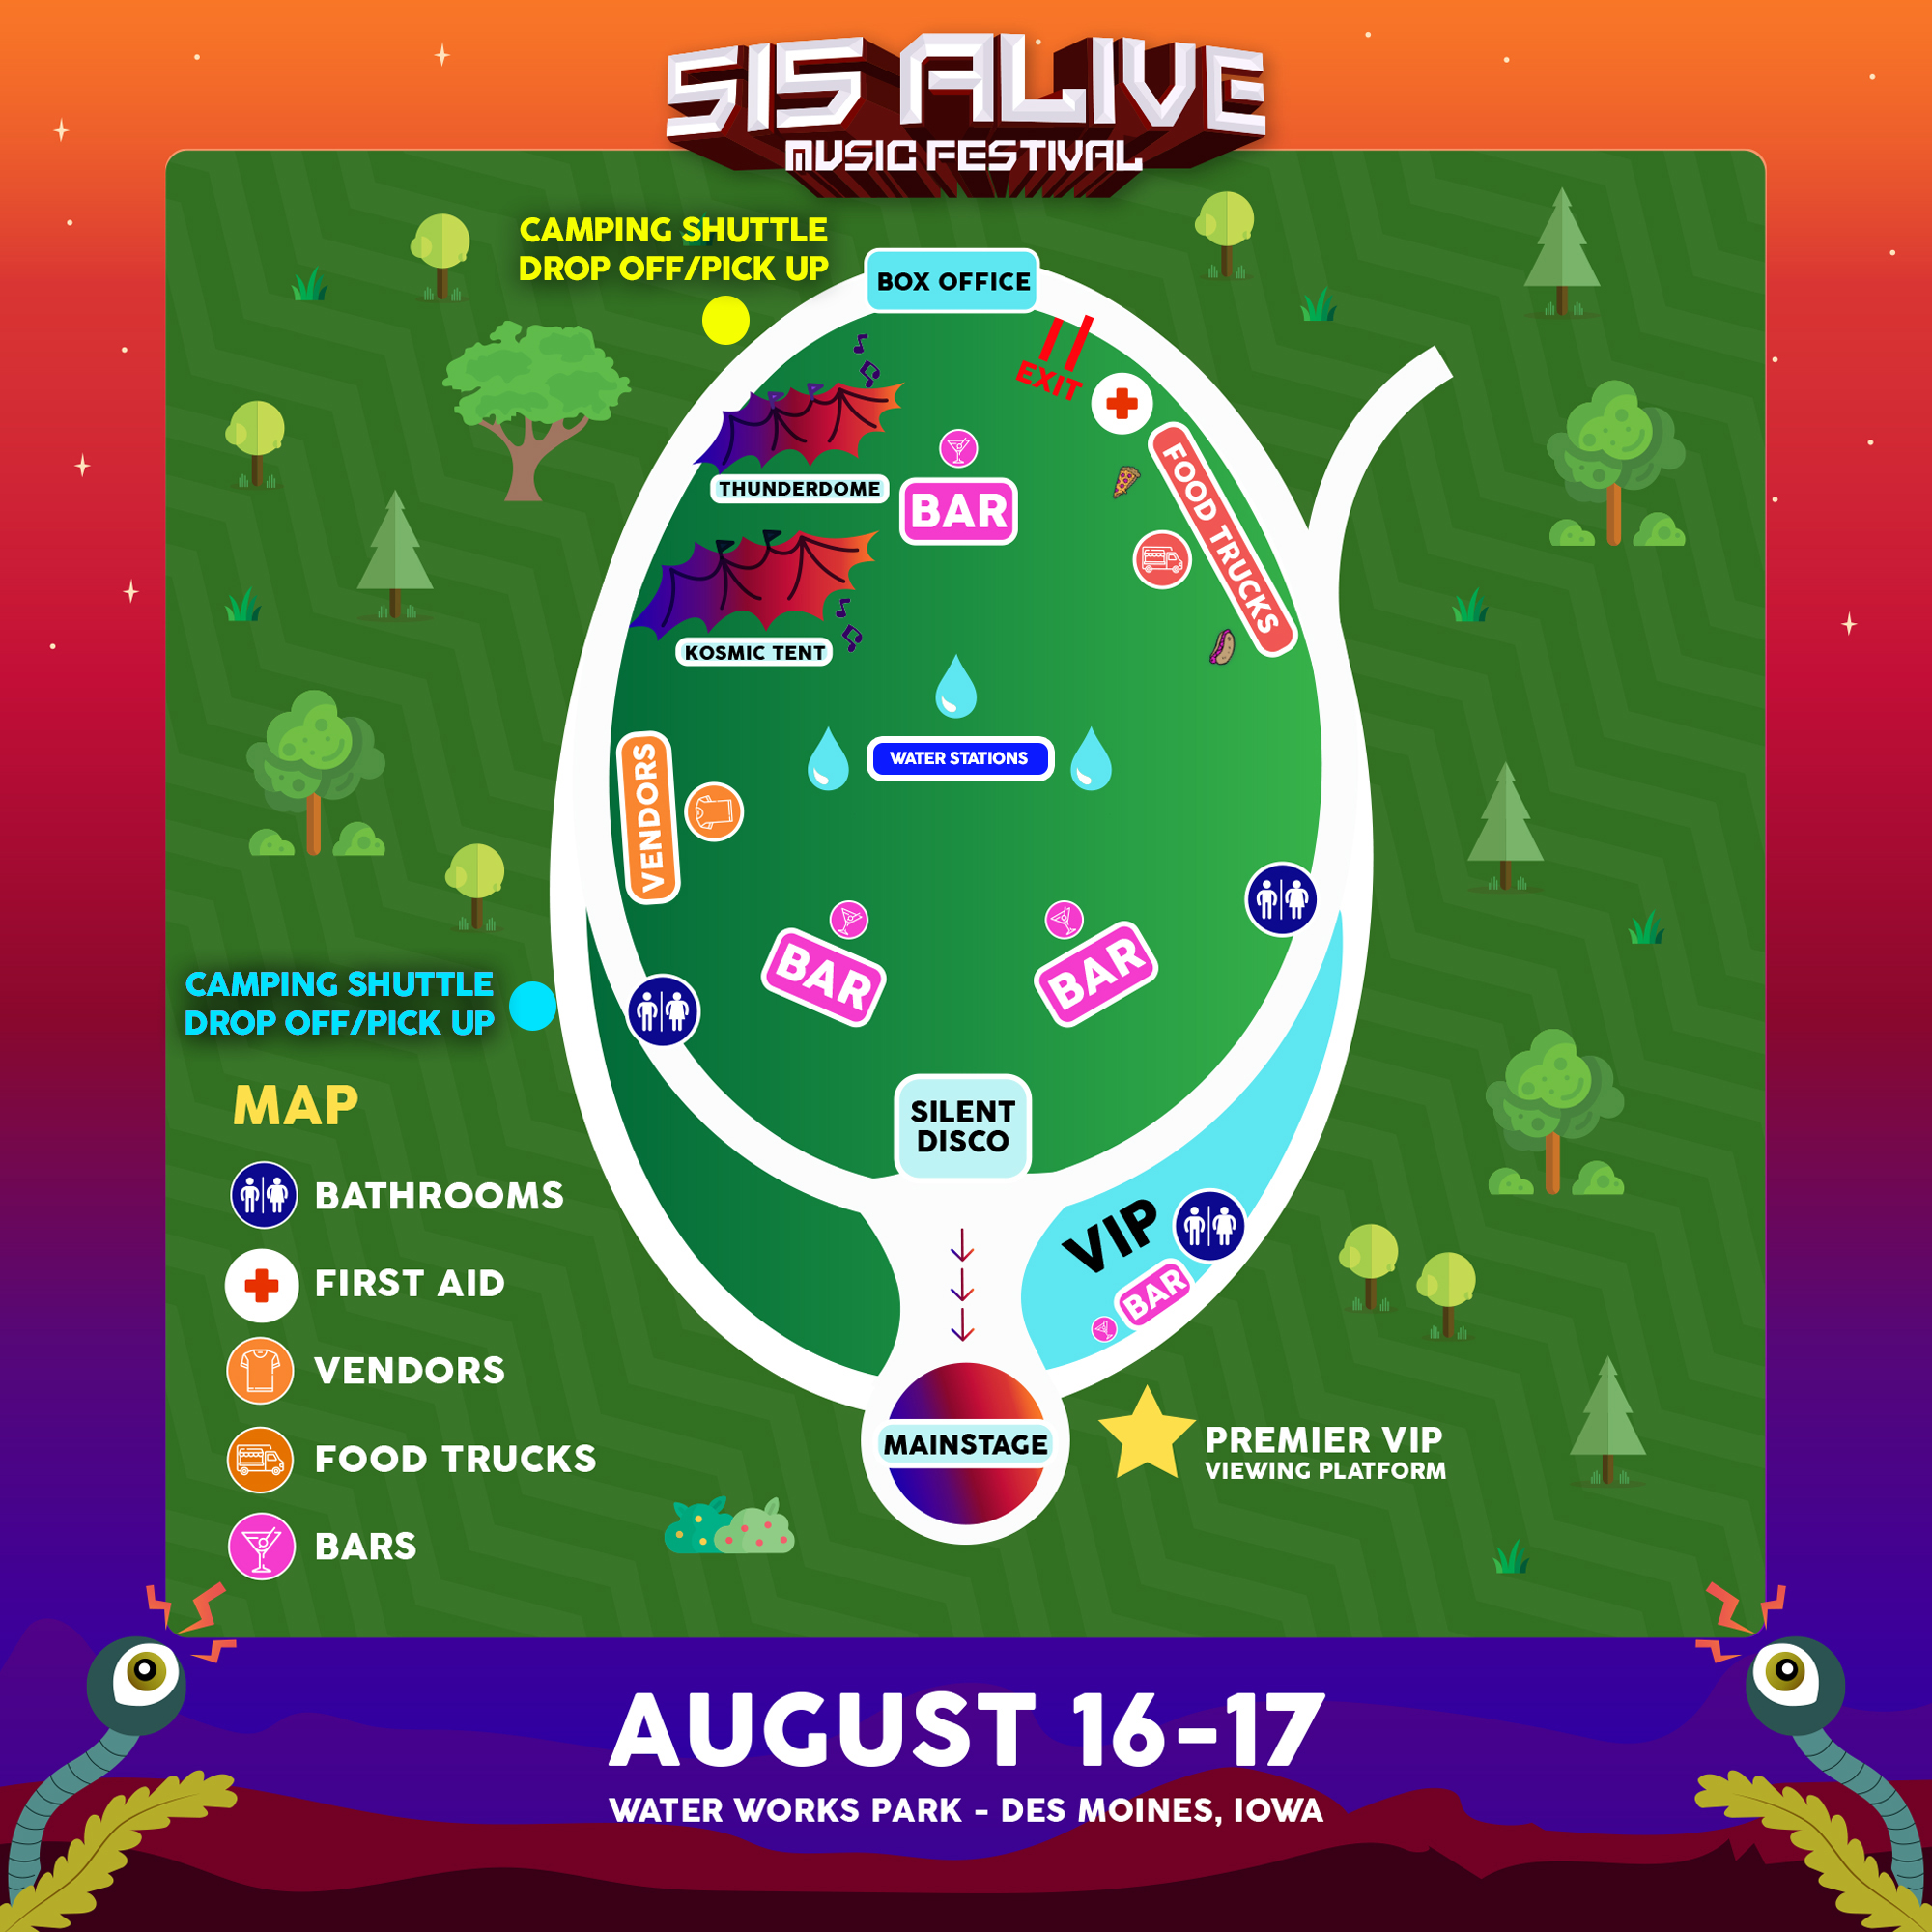 515 ALive 2019 Map Graphics.jpg